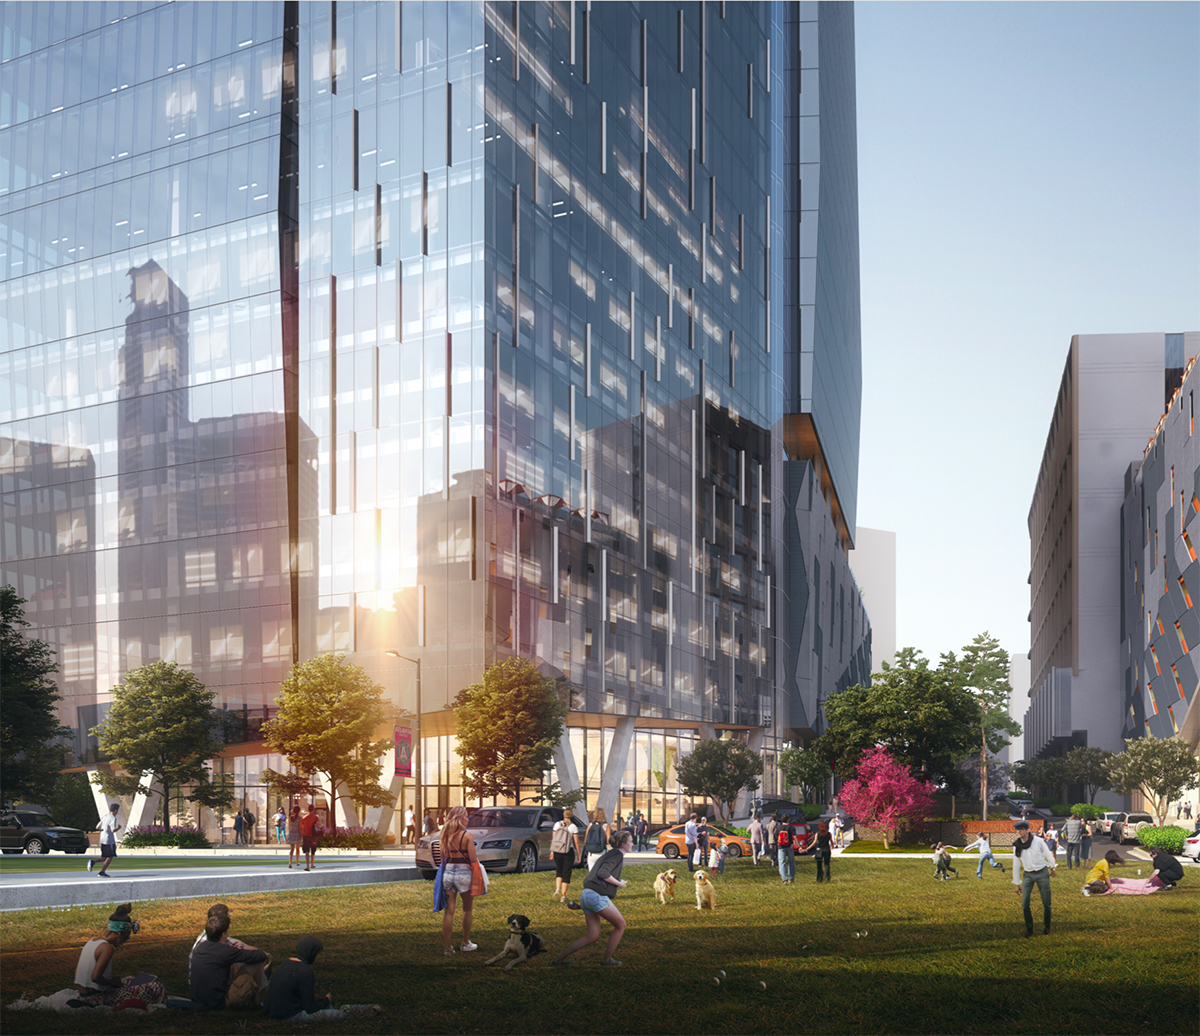 Master developer Granite Properties will extend the street known as Arts Center Way through the project to better connect Midtown's grid with better vehicular and pedestrian connectivity and offer access to the Arts Center MARTA Station.